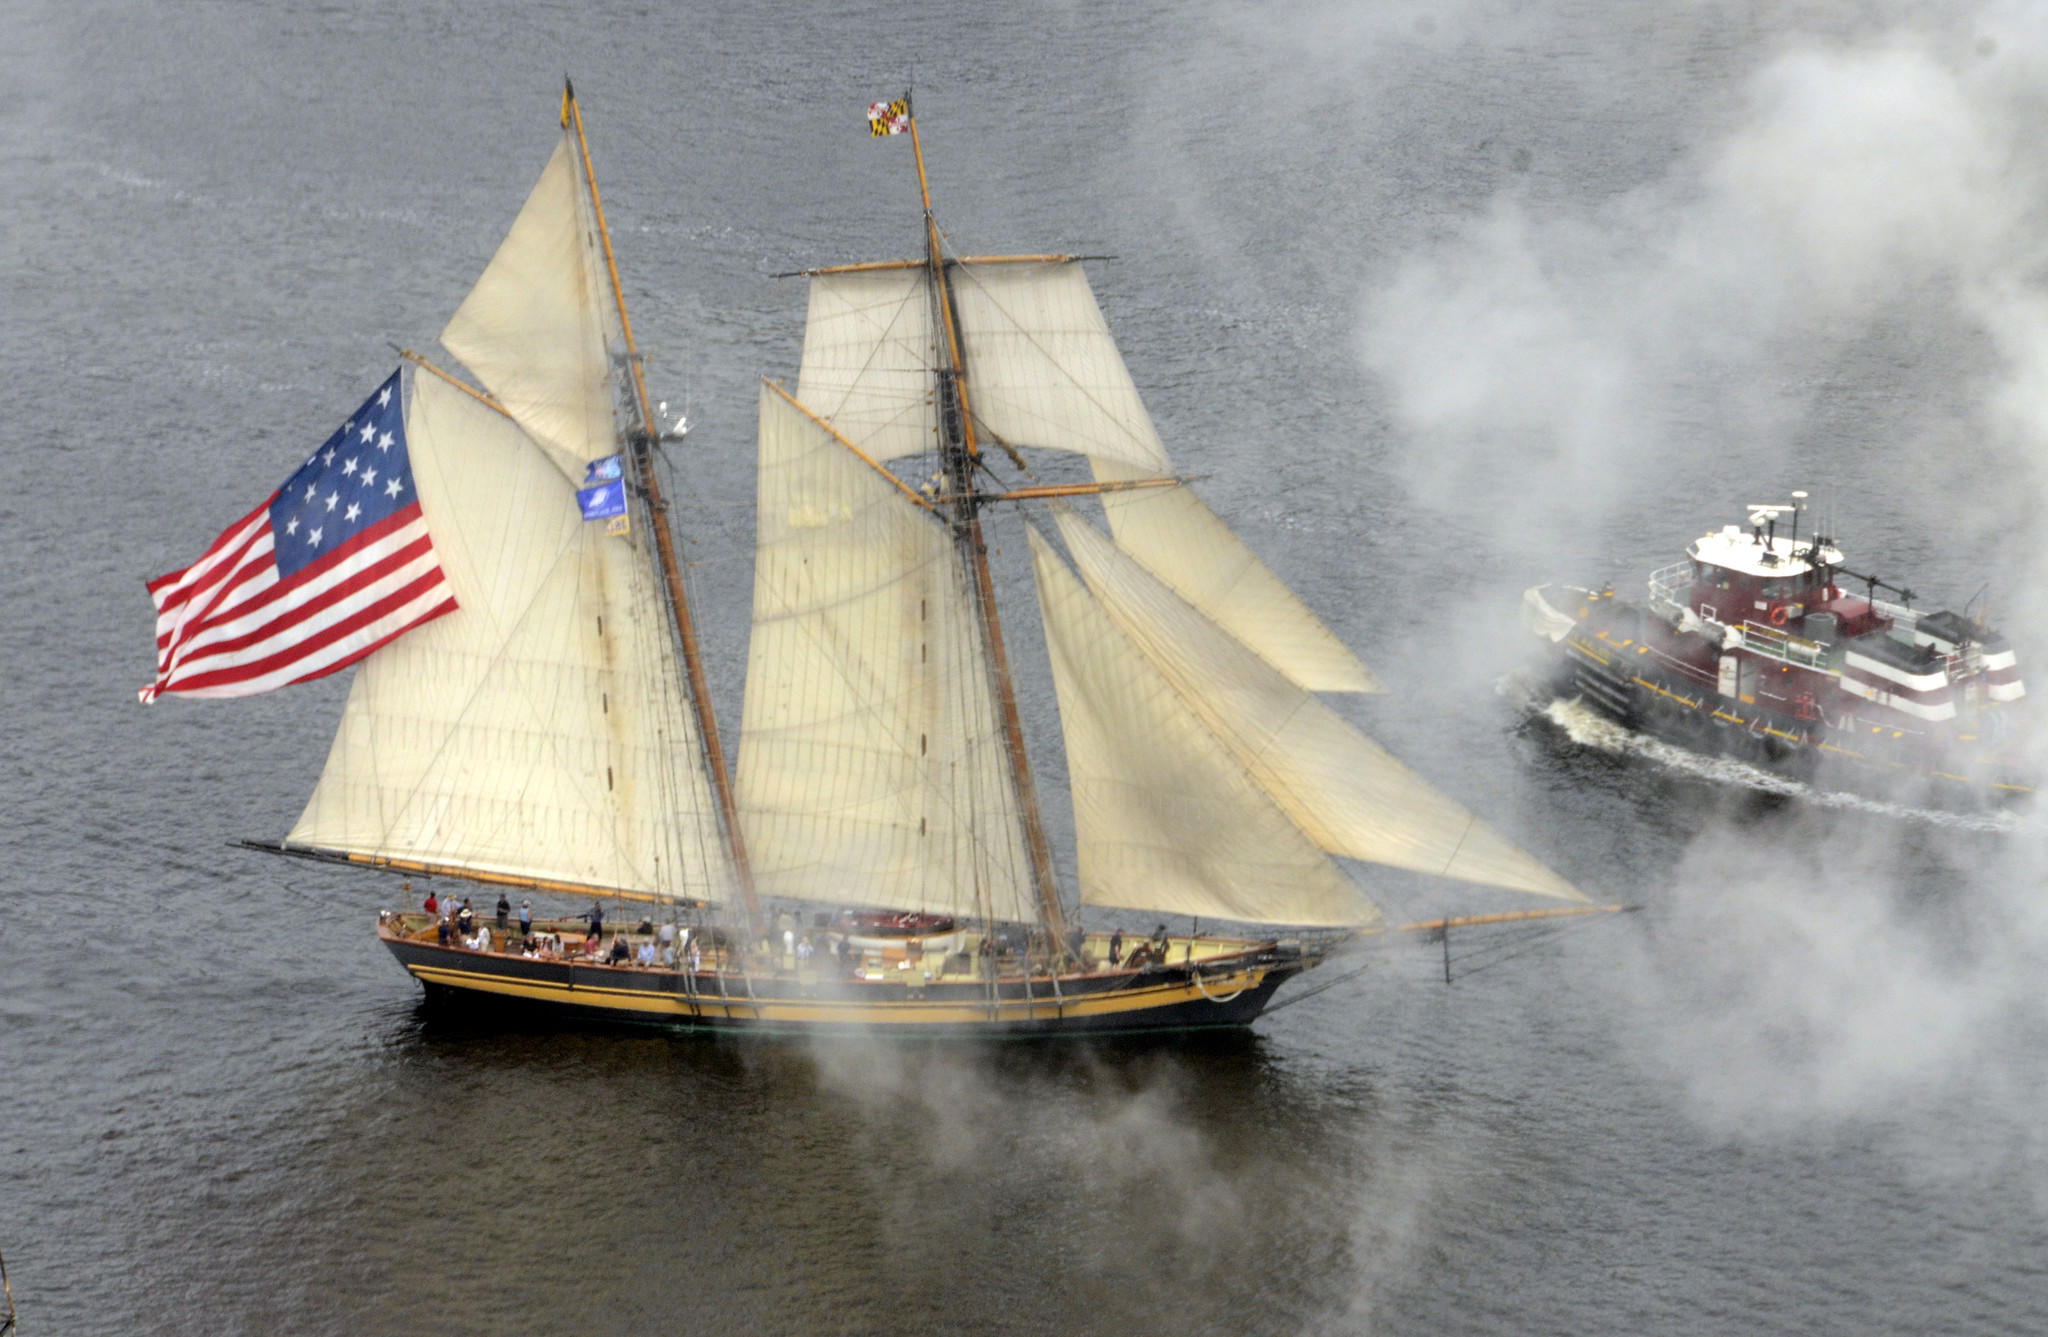 Tall ships leave the Inner Harbor ending the Star Spangled Sailabration, with the Pride of Baltimore II leading the way.